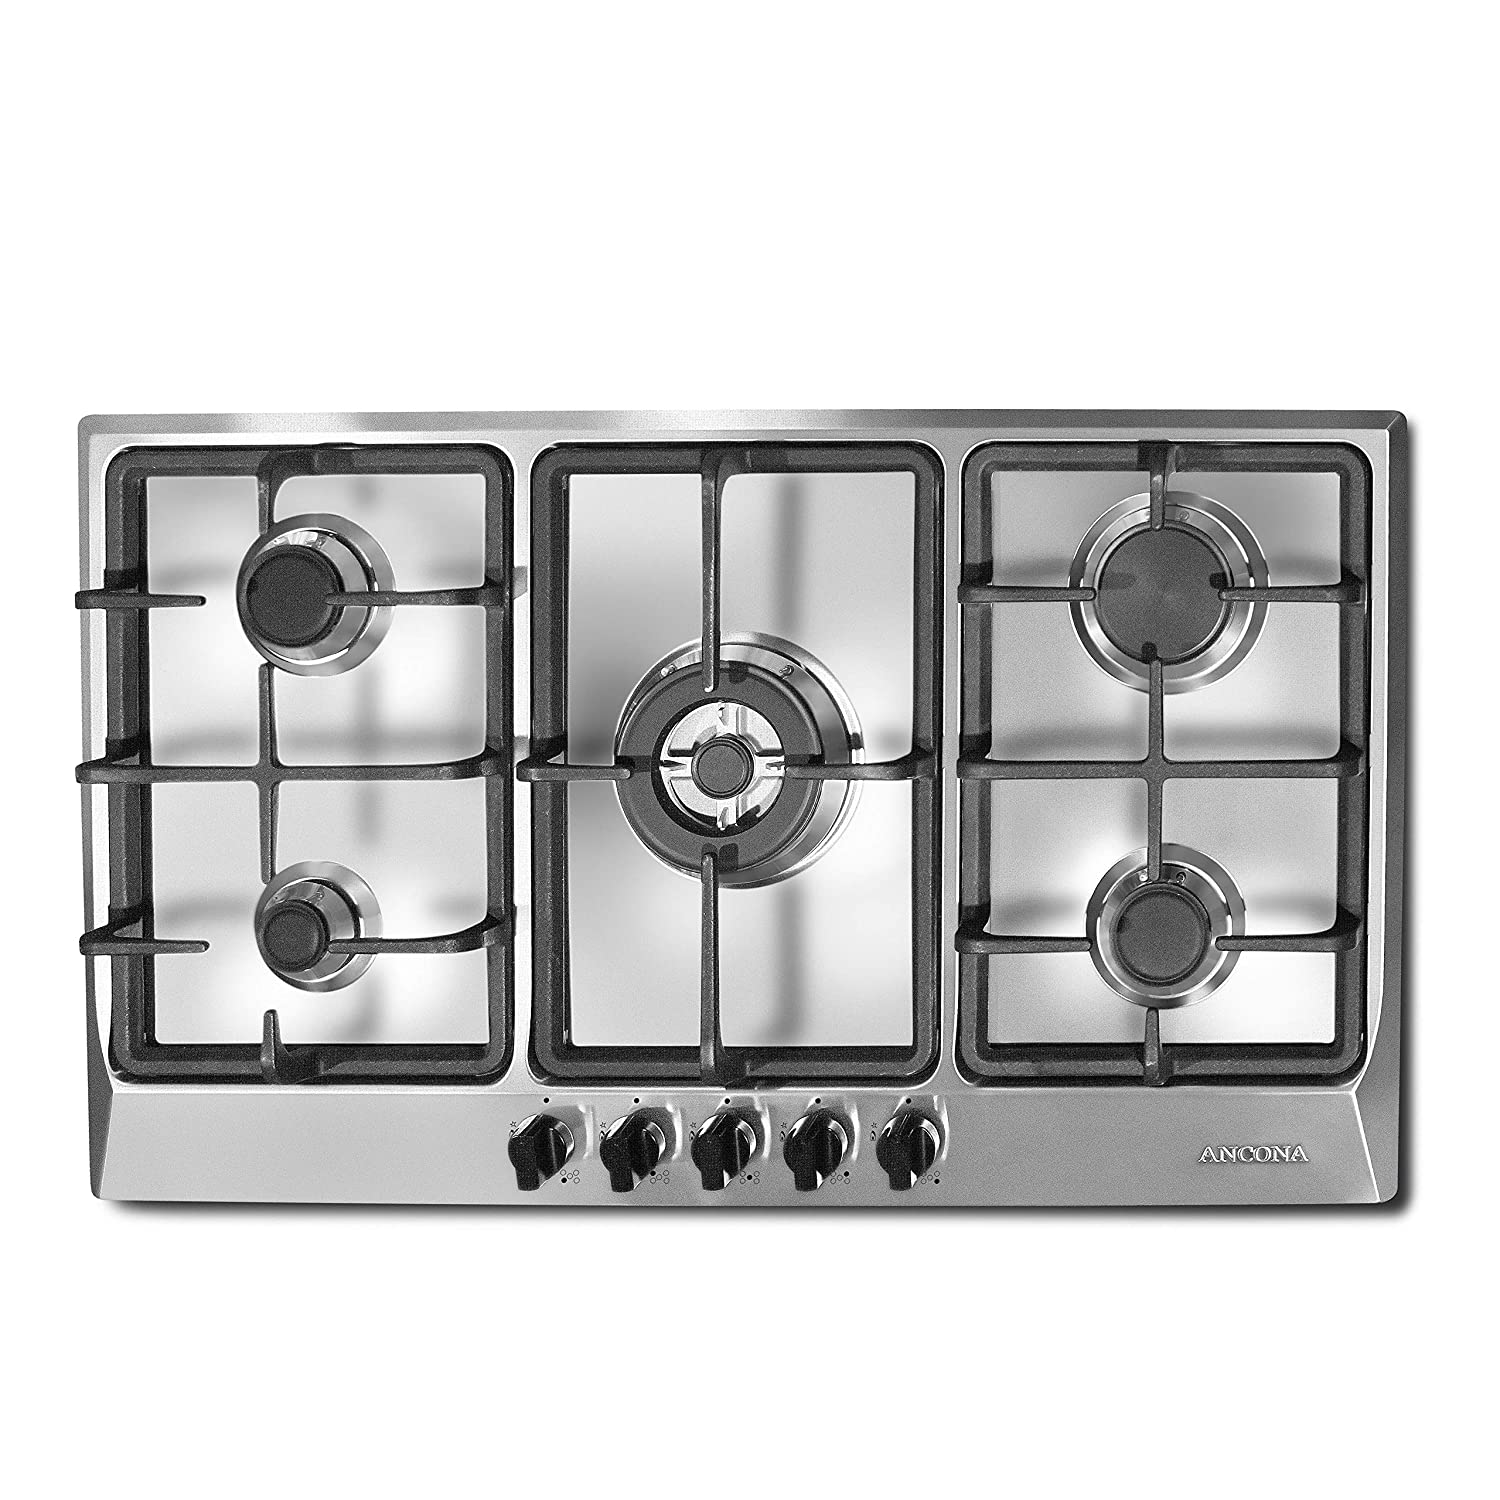 Ancona AN-21449 34' Gas Cooktop, Stainless Steel